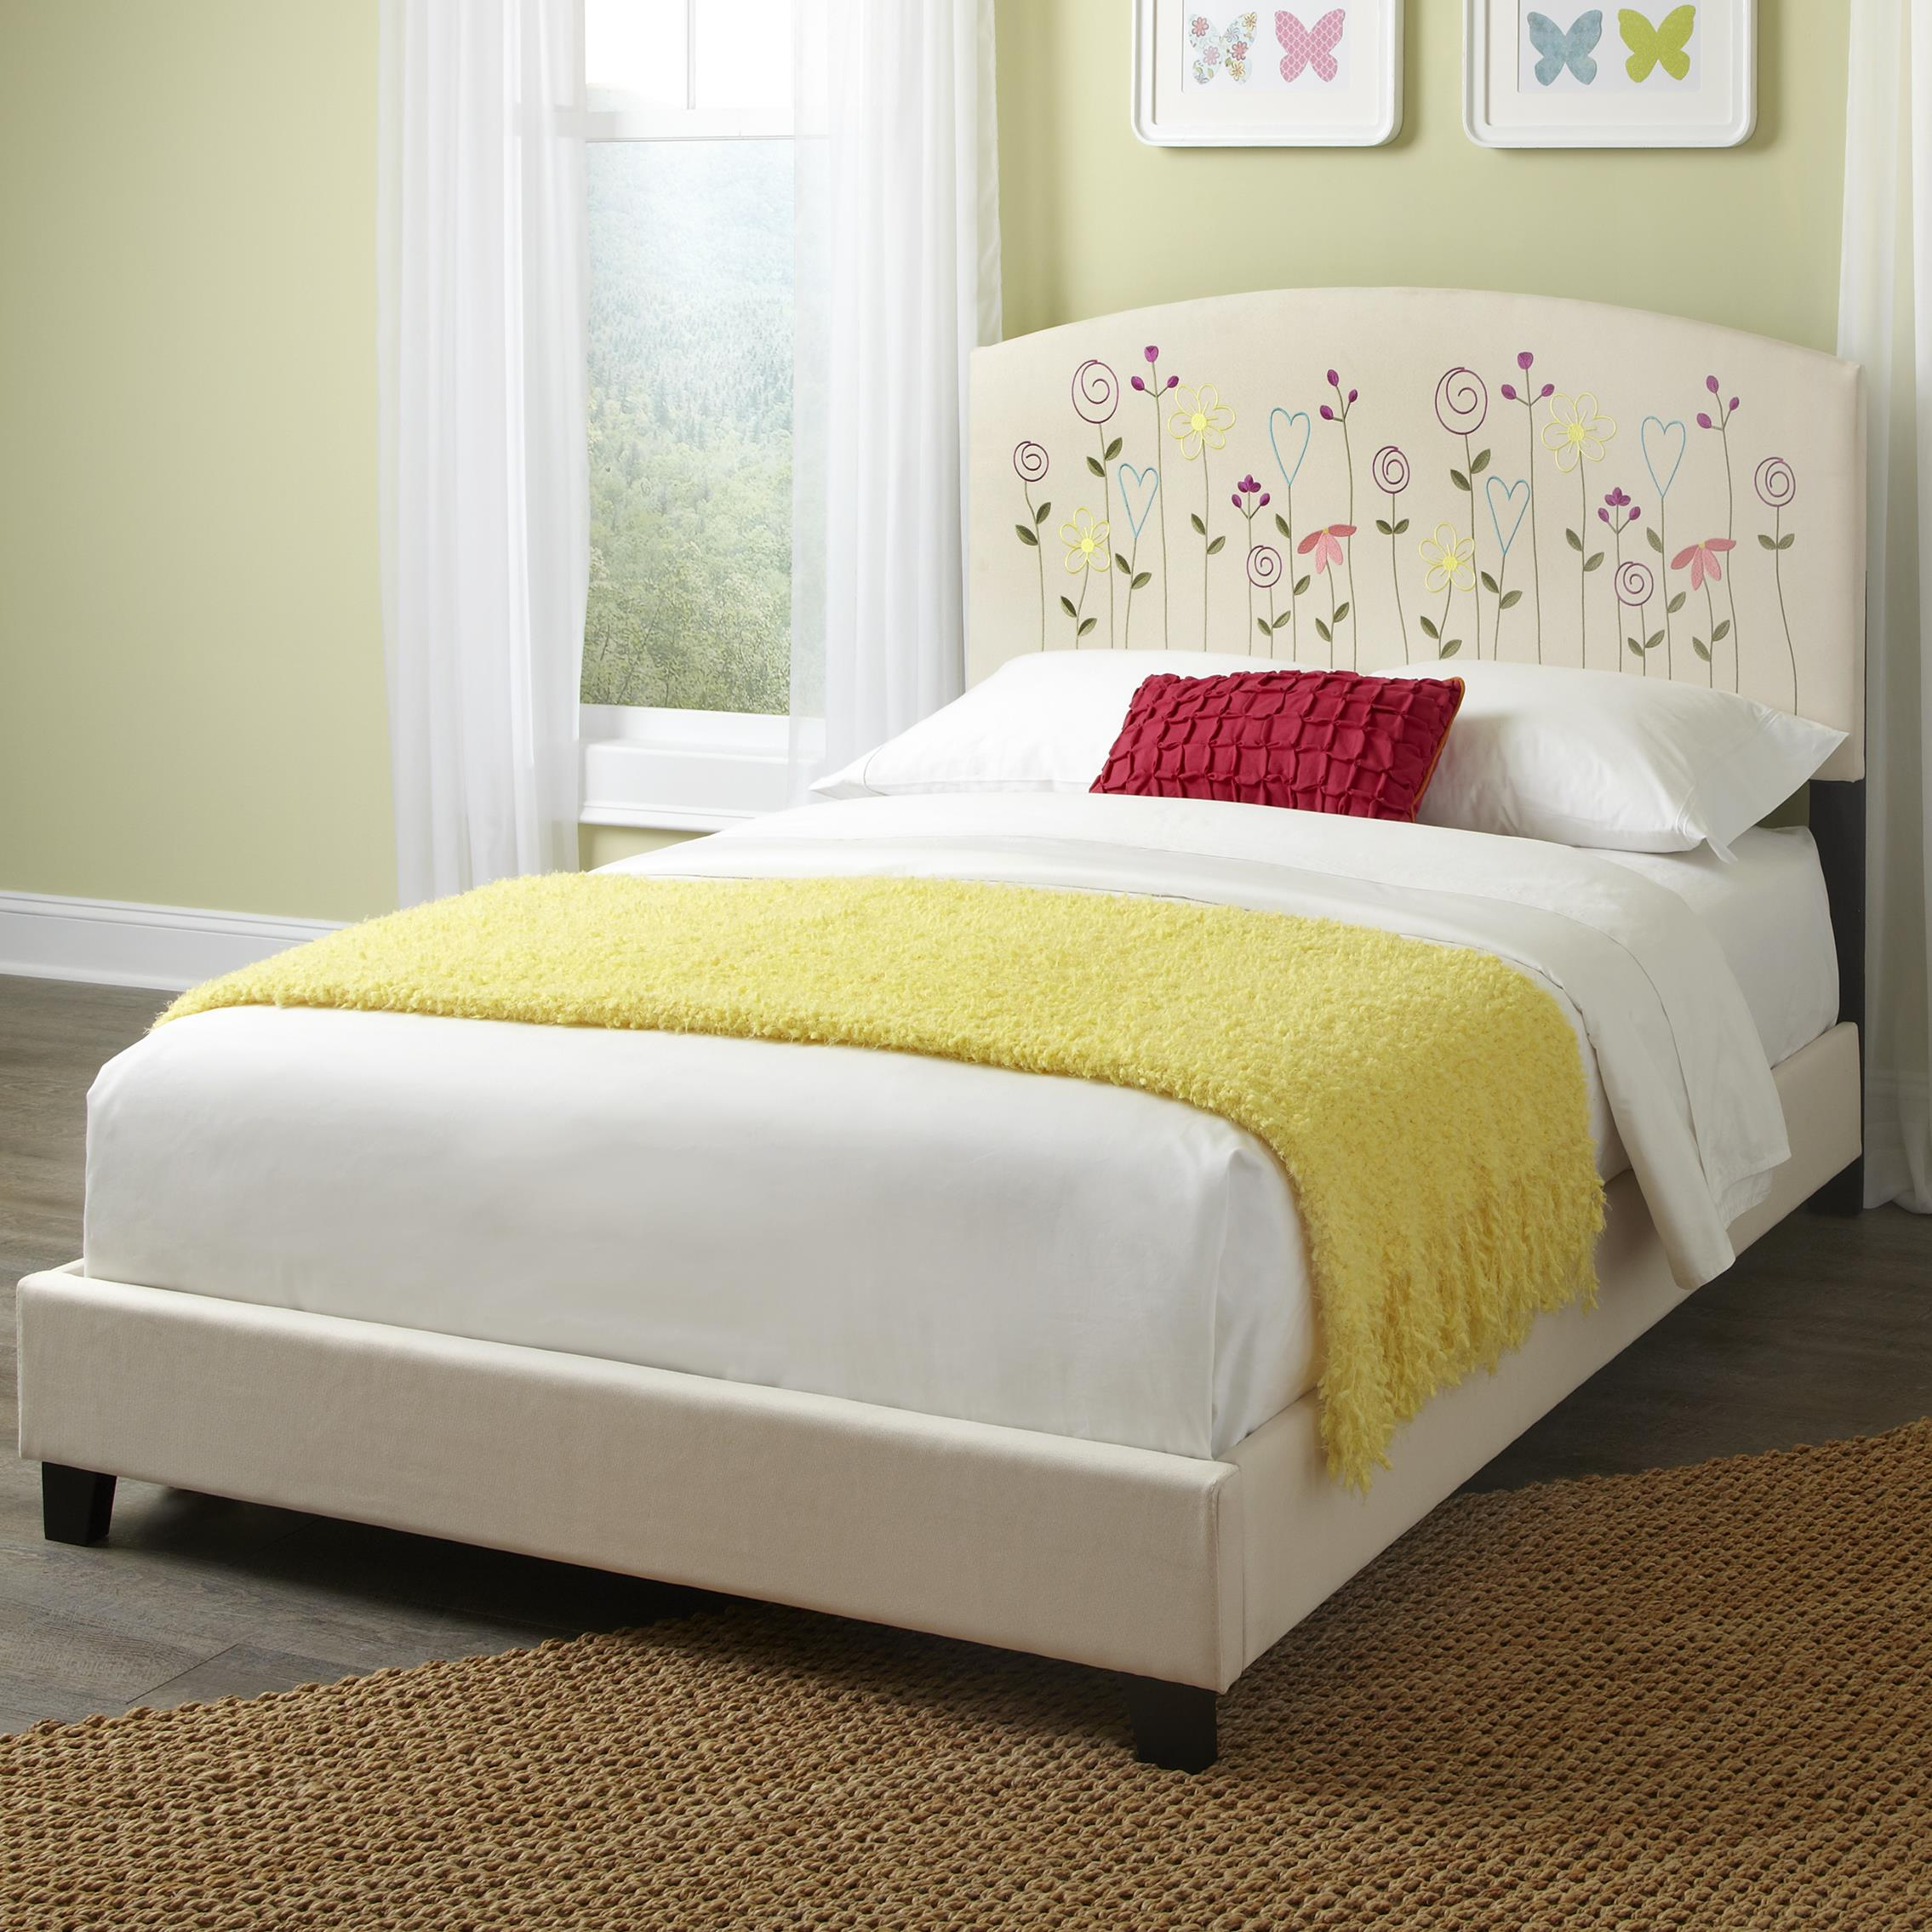 Kith Furniture Kourtney Full Flower Headboard and Footboard - Item Number: 170-41+42